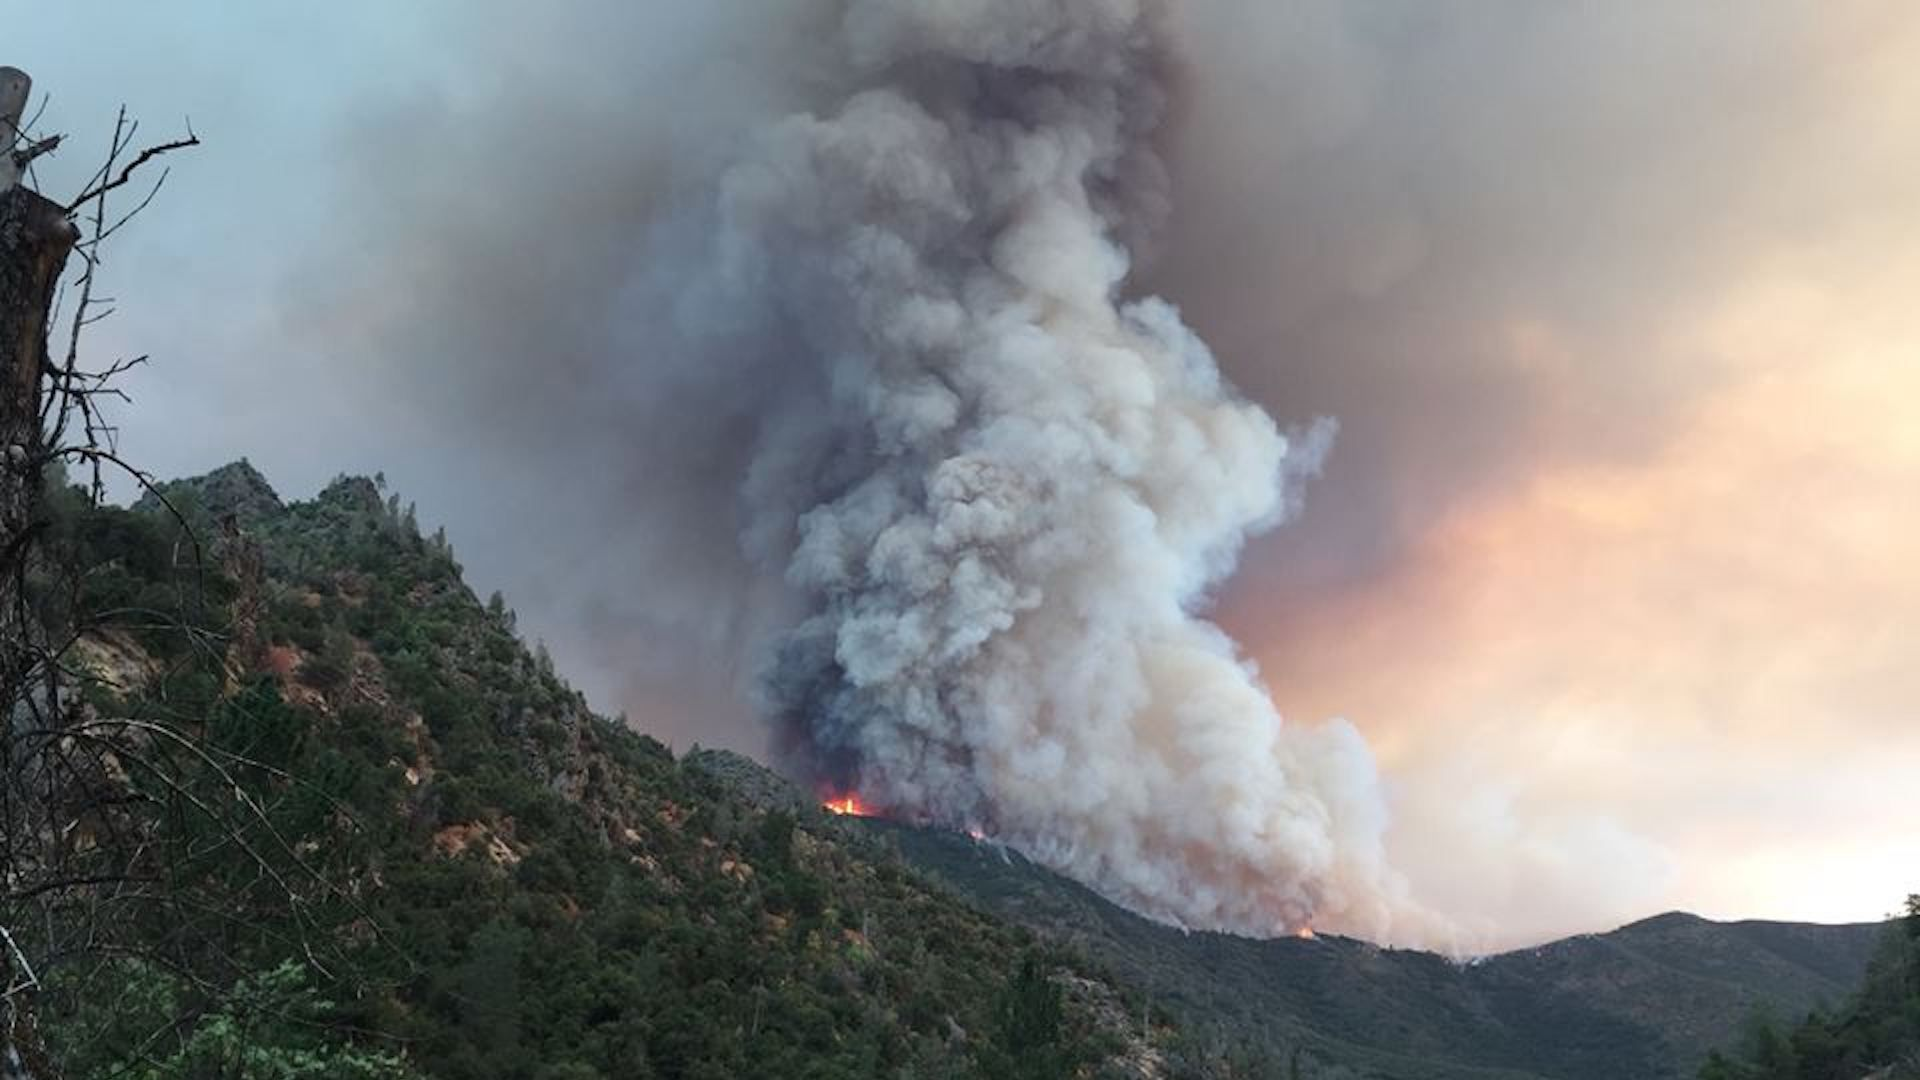 A growing wildfire is causing hazardous air quality in